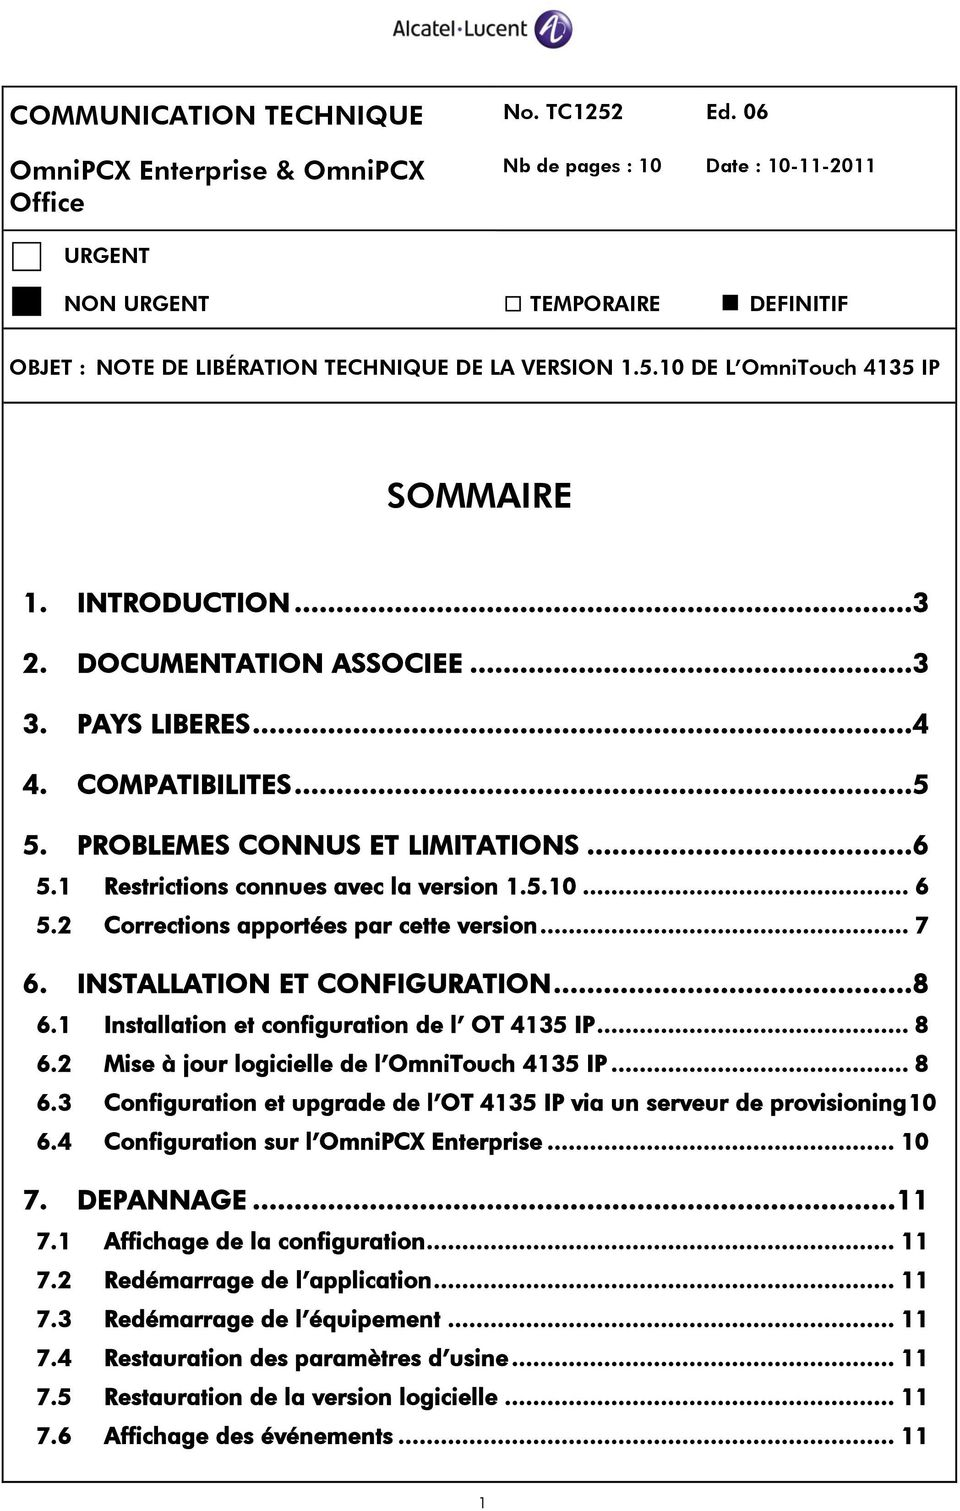 DOCUMENTATION ASSOCIEE... 3 3. PAYS LIBERES... 4 4. COMPATIBILITES... 5 5. PROBLEMES CONNUS ET LIMITATIONS... 6 5.1 Restrictions connues avec la version 1.5.10... 6 5.2 Corrections apportées par cette version.